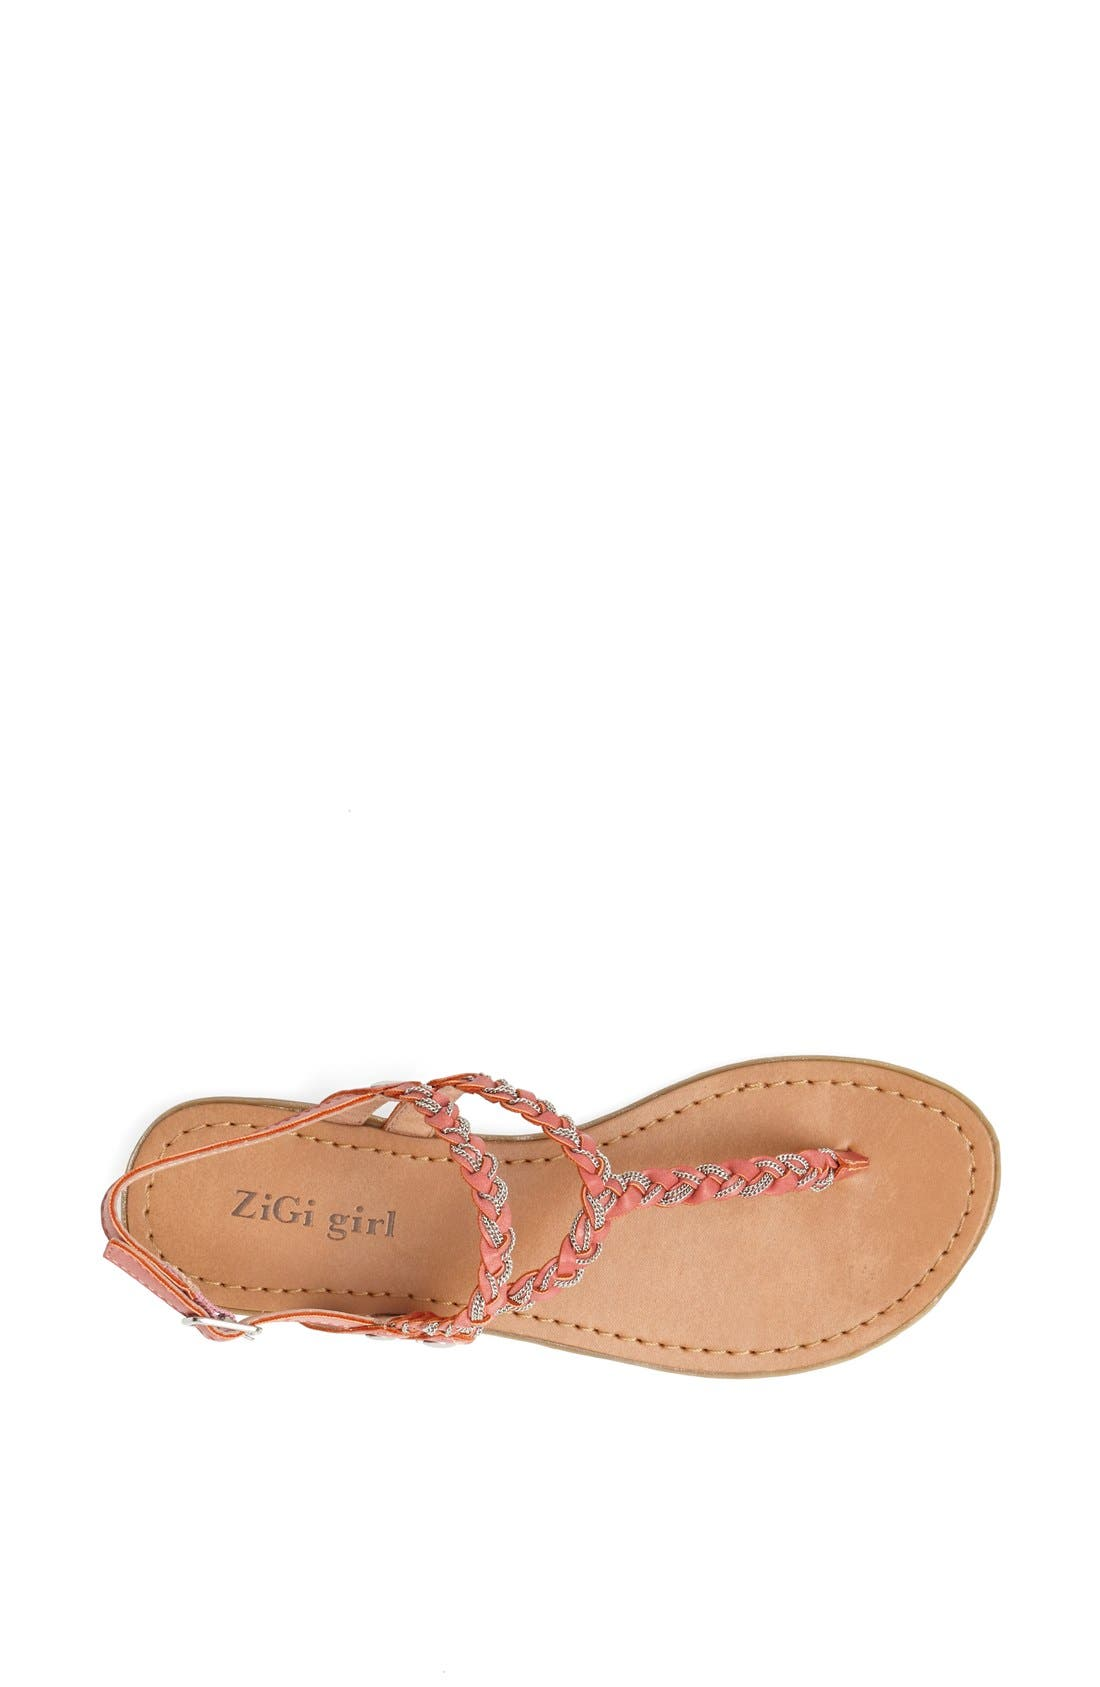 Alternate Image 3  - ZiGi girl 'Articulate' Sandal